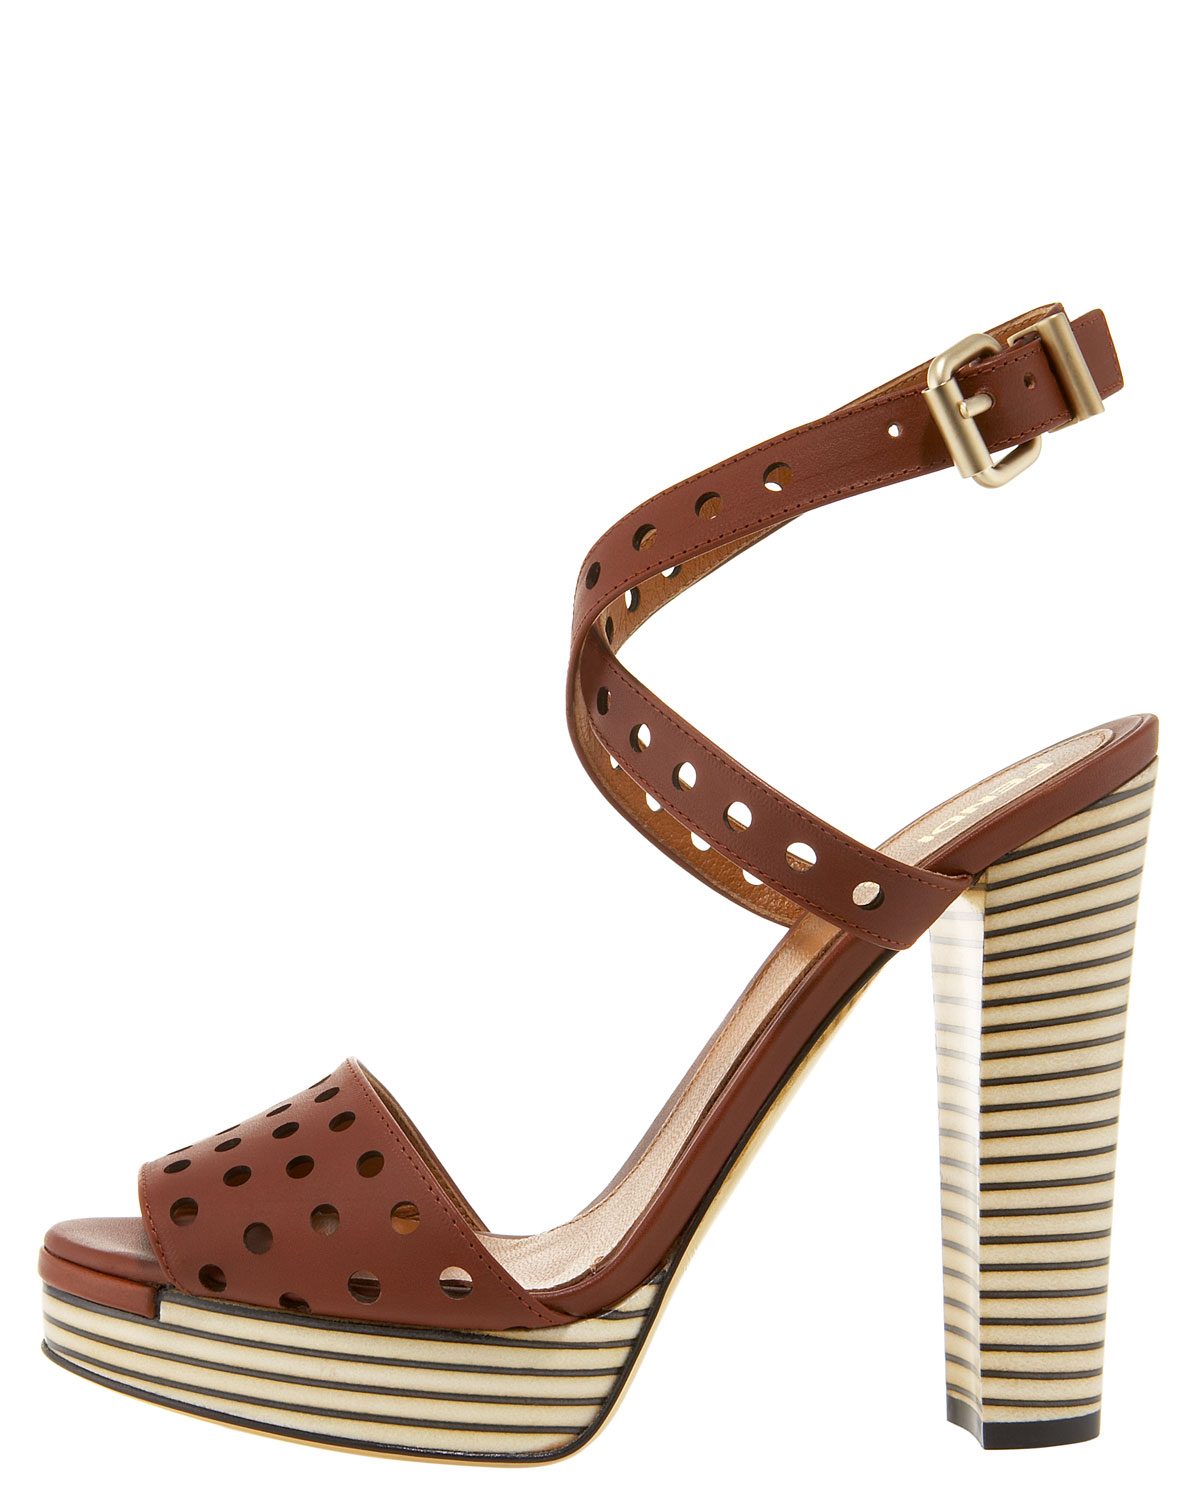 Platform leather sandals Fendi 4ymRuKs